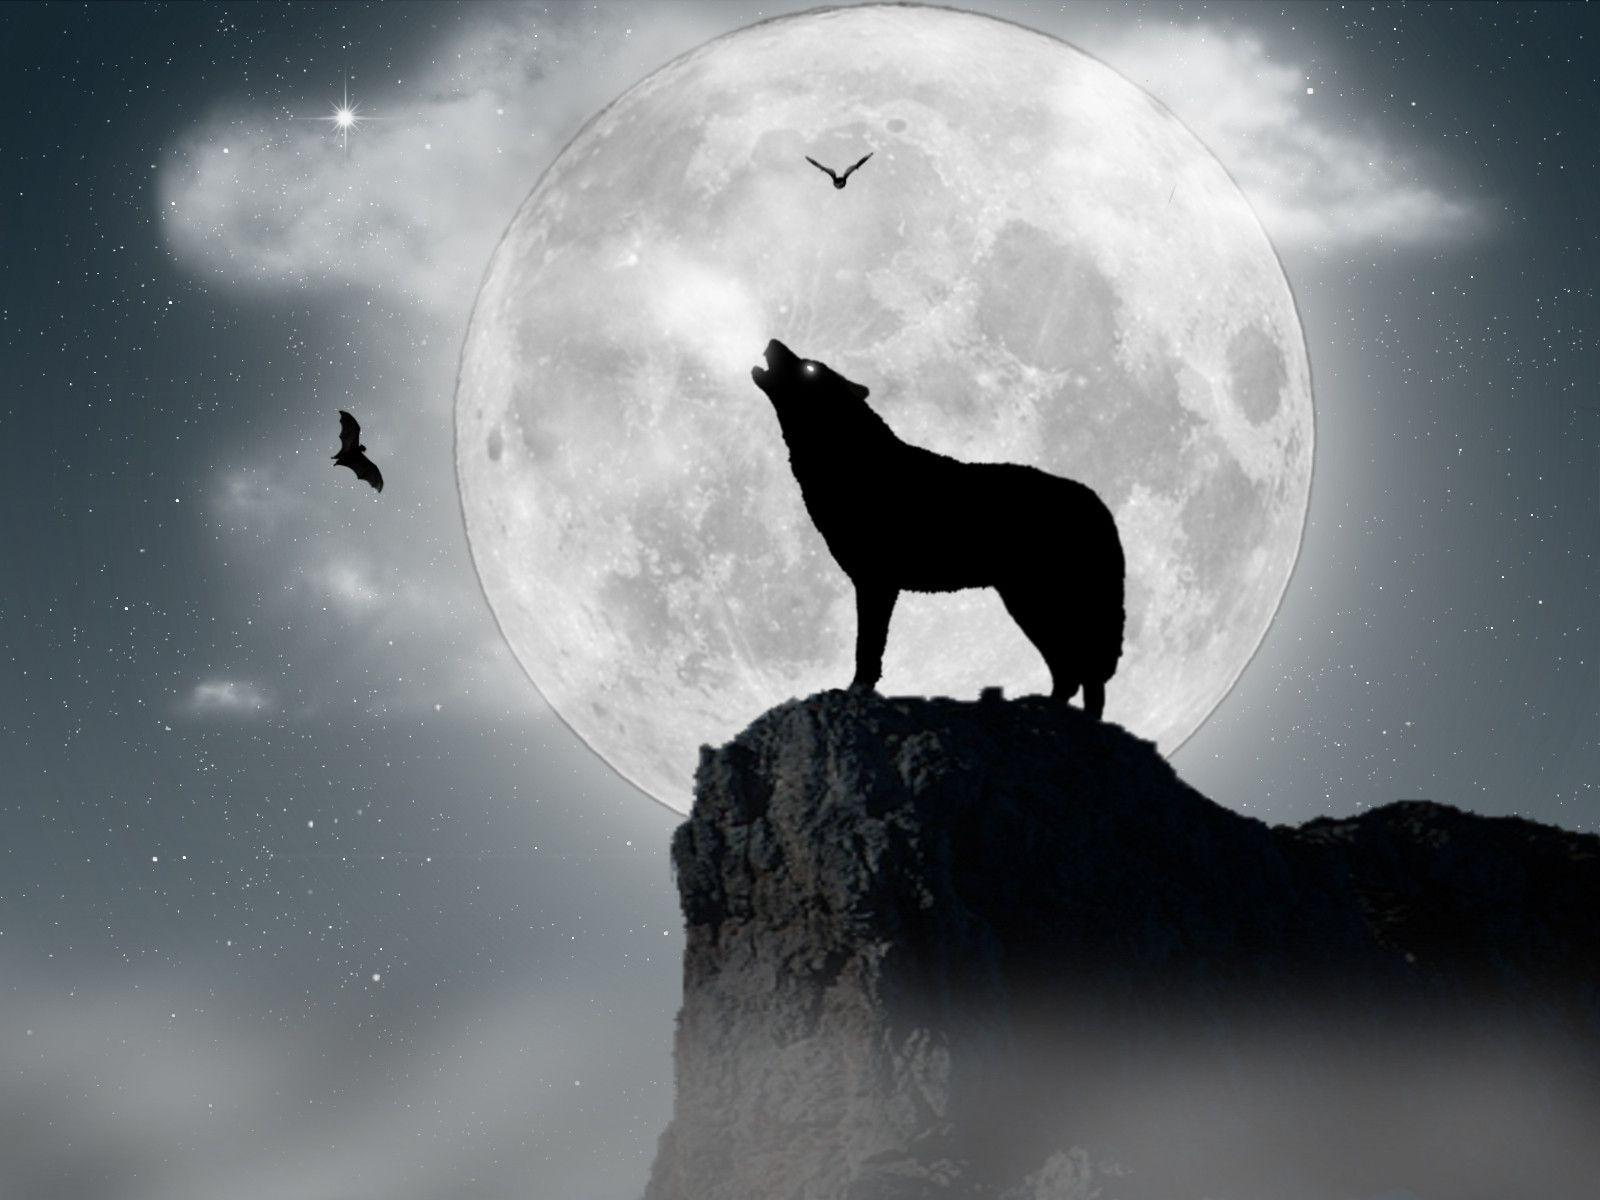 the howling movie wallpapers - photo #41